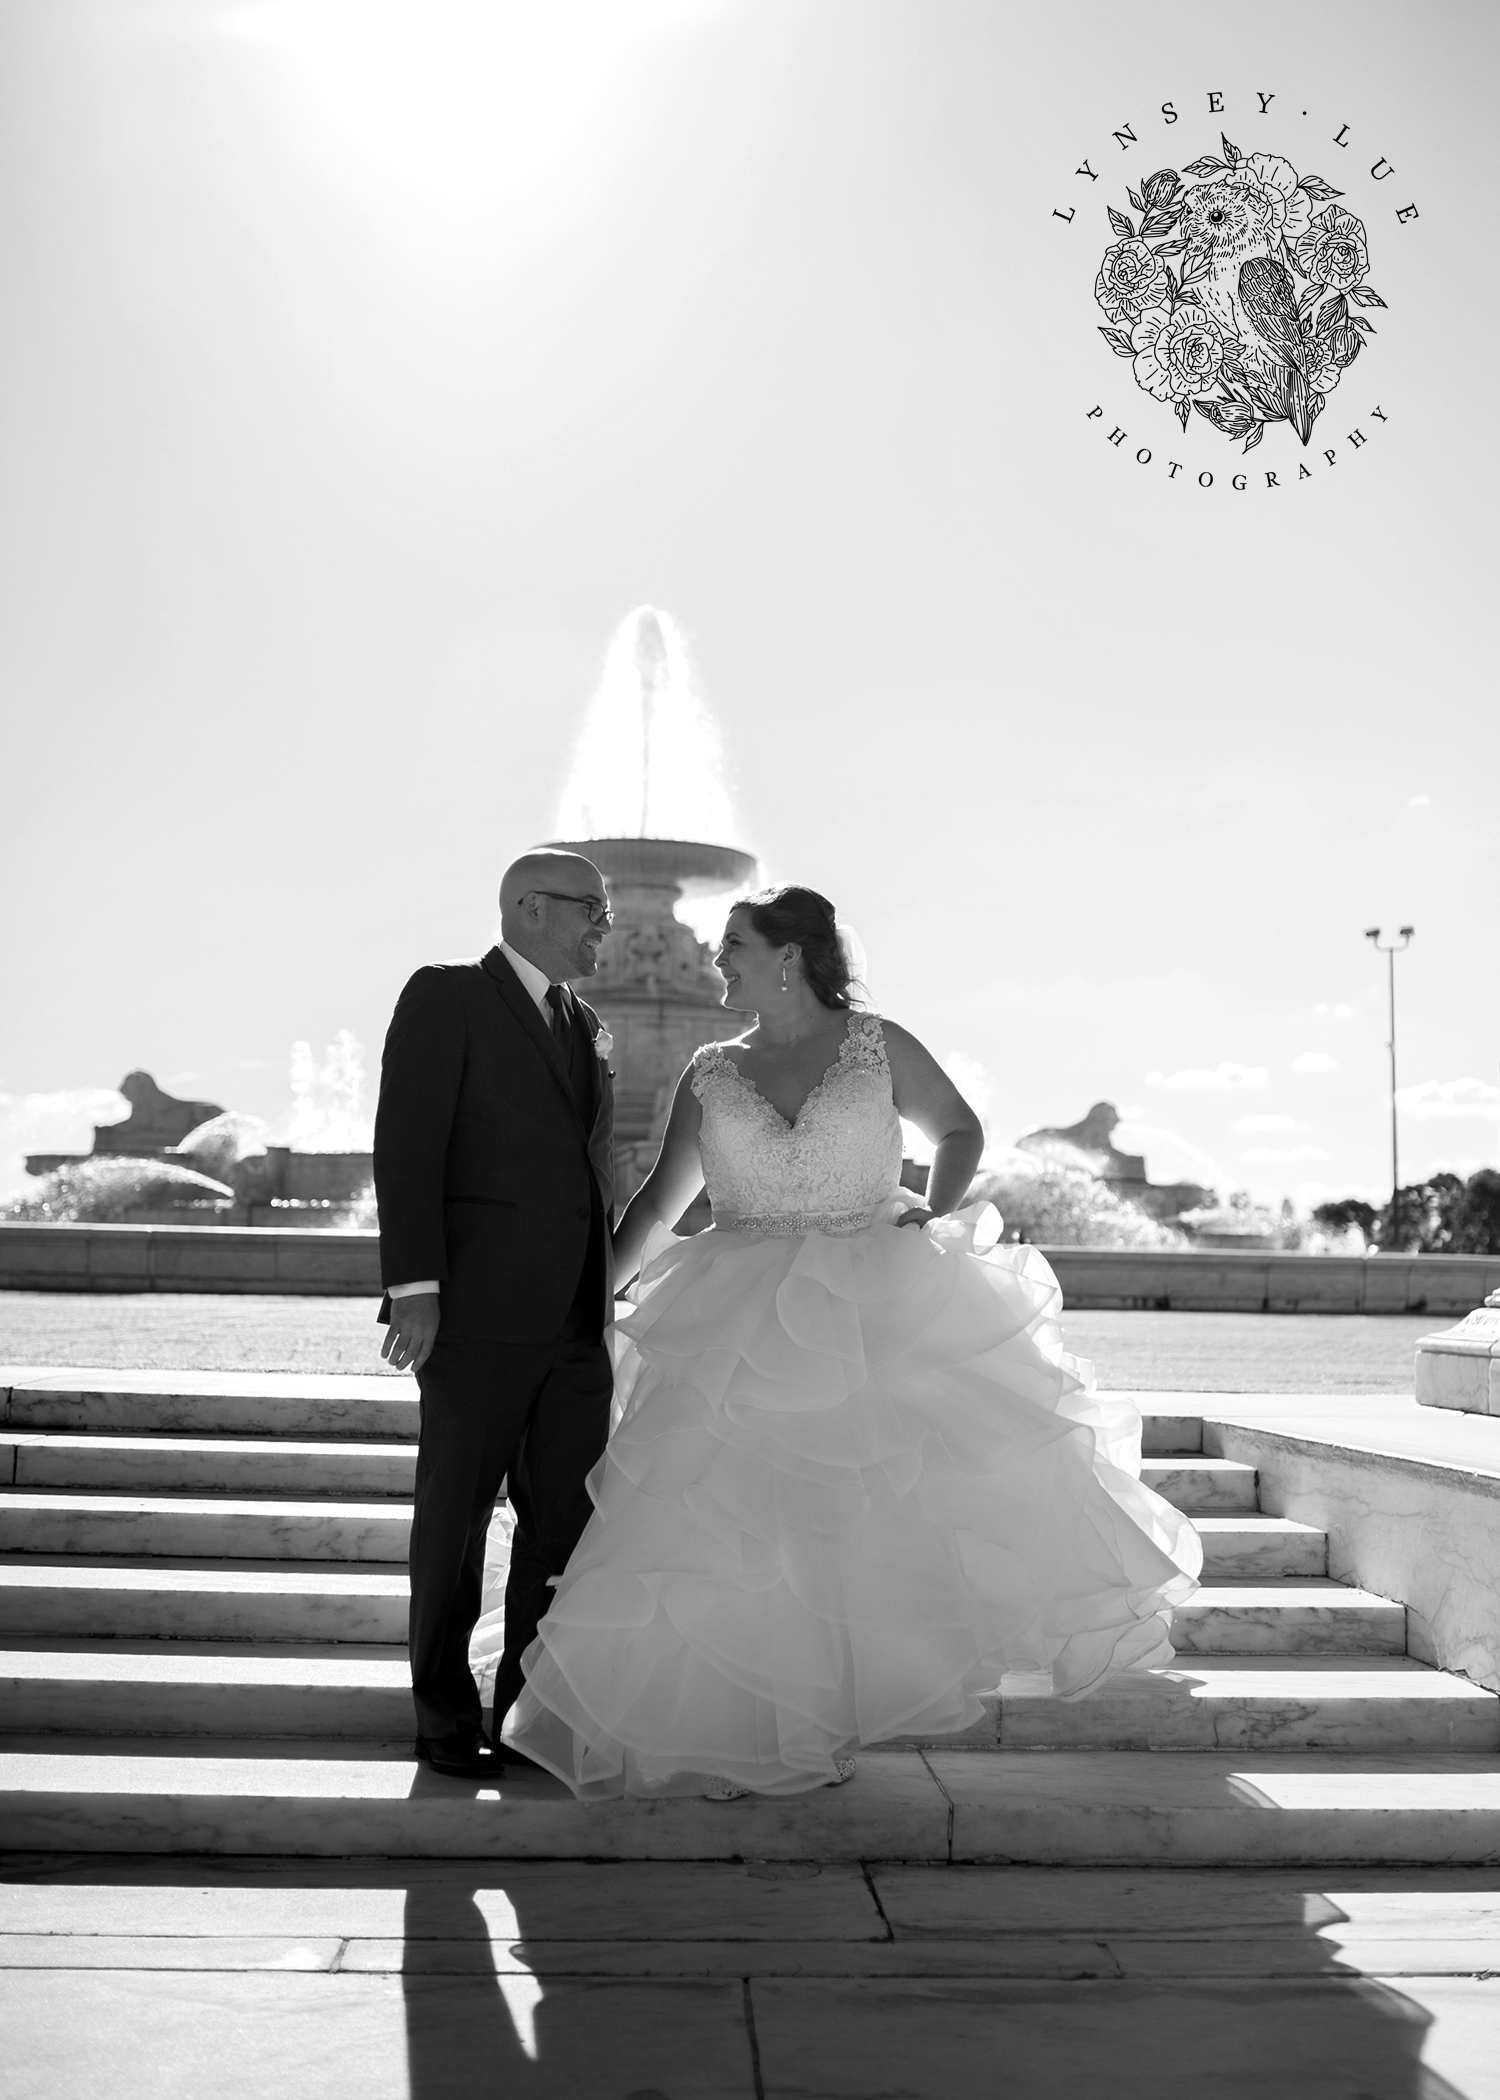 detroit wedding photography 6.jpg